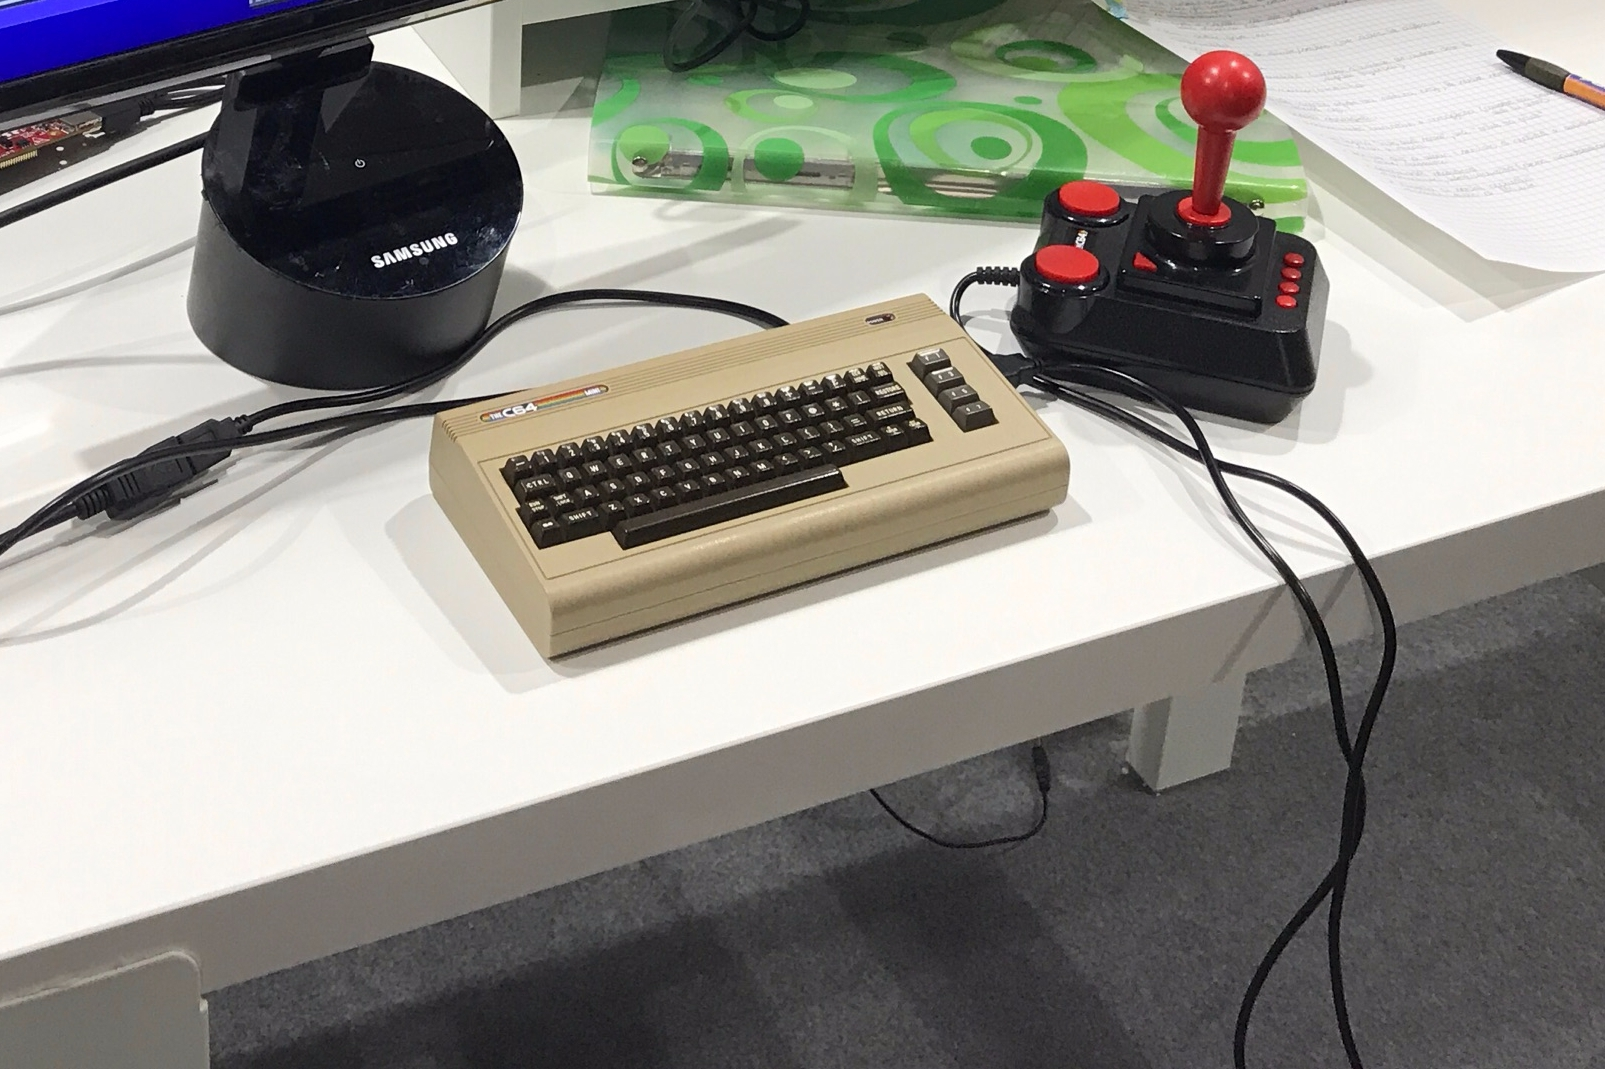 C64 mini ps3 controller | Commodore 64 Appreciation Thread  2019-01-21